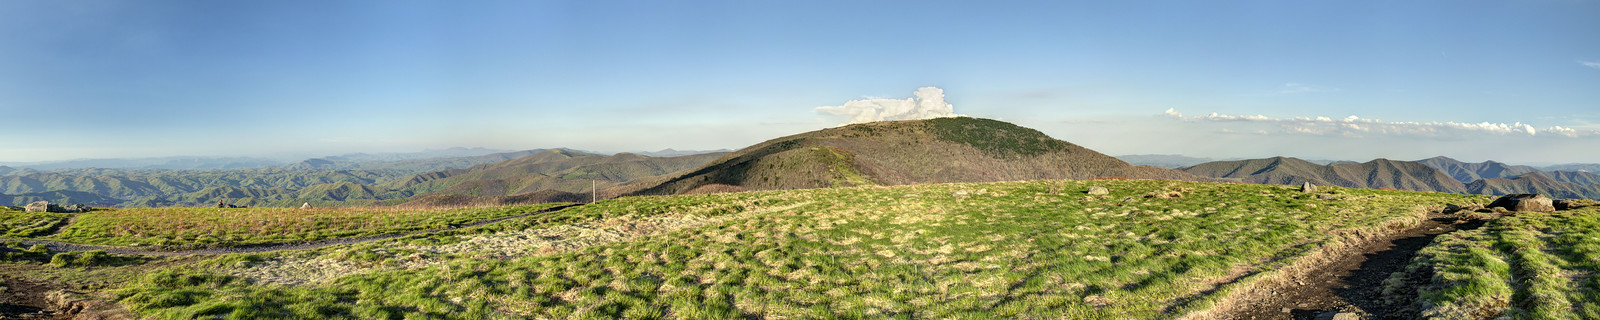 The view from the top of Round Bald on the Appalachian Trail in TN on Wednesday, May 15, 2013. Copyright 2013 Jason Barnette